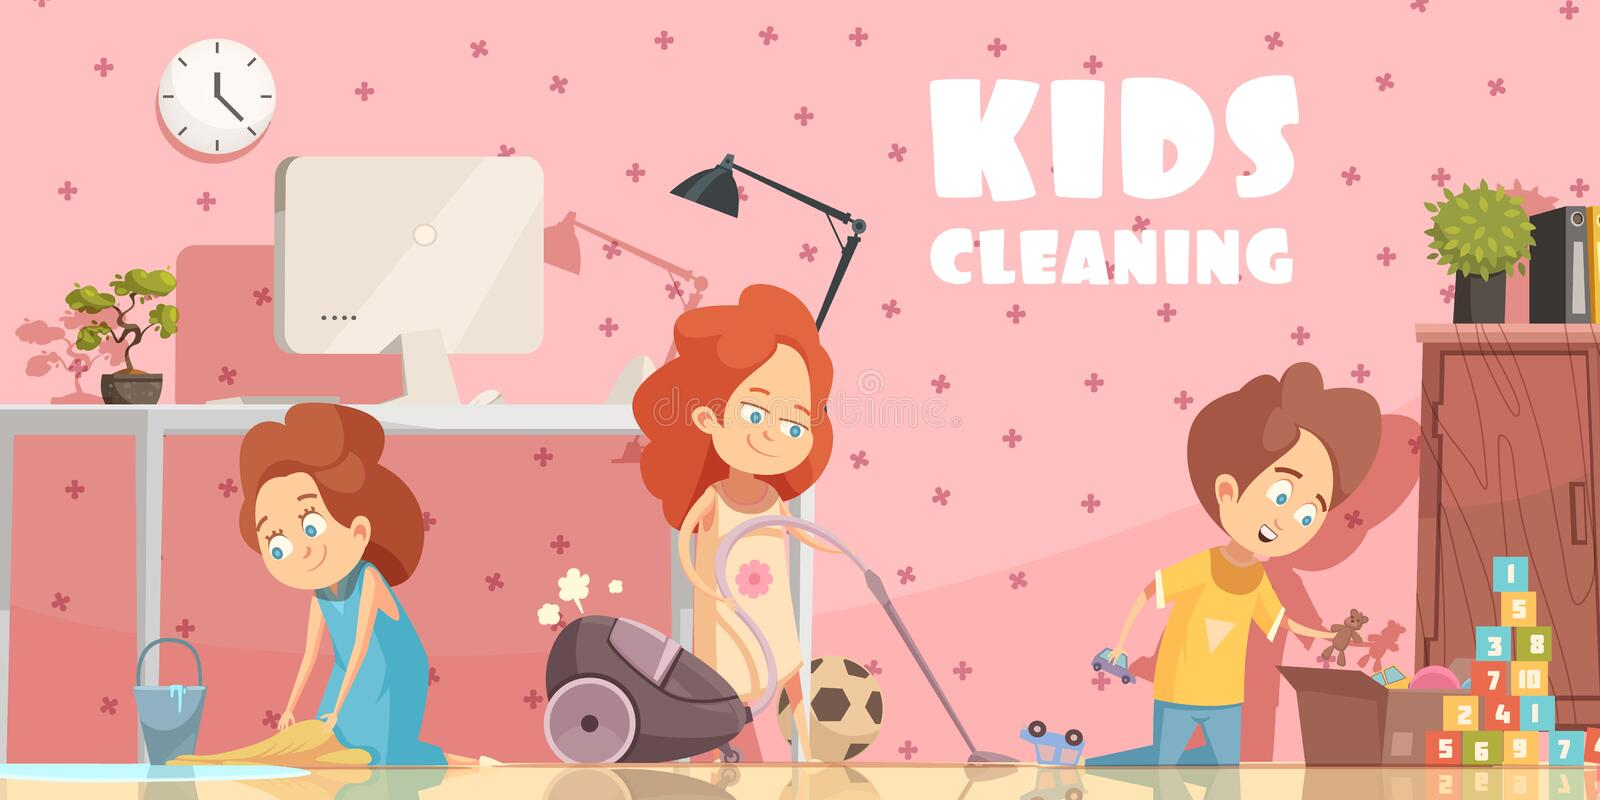 Kids Cleaning Room Cartoon Poster Stock Vector - Illustration of ...